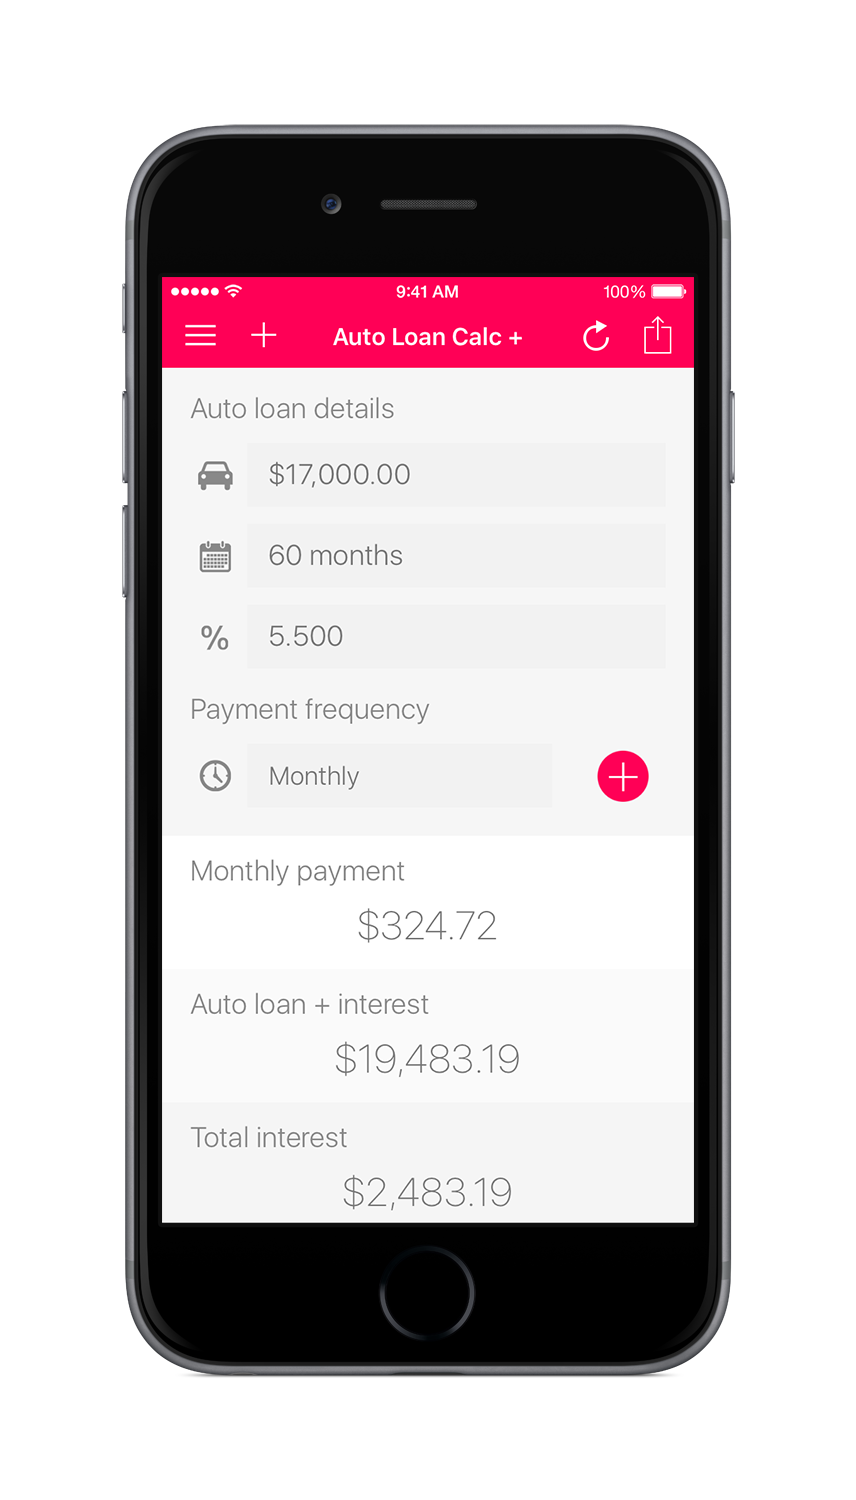 Auto Loan Calculator + for iOS